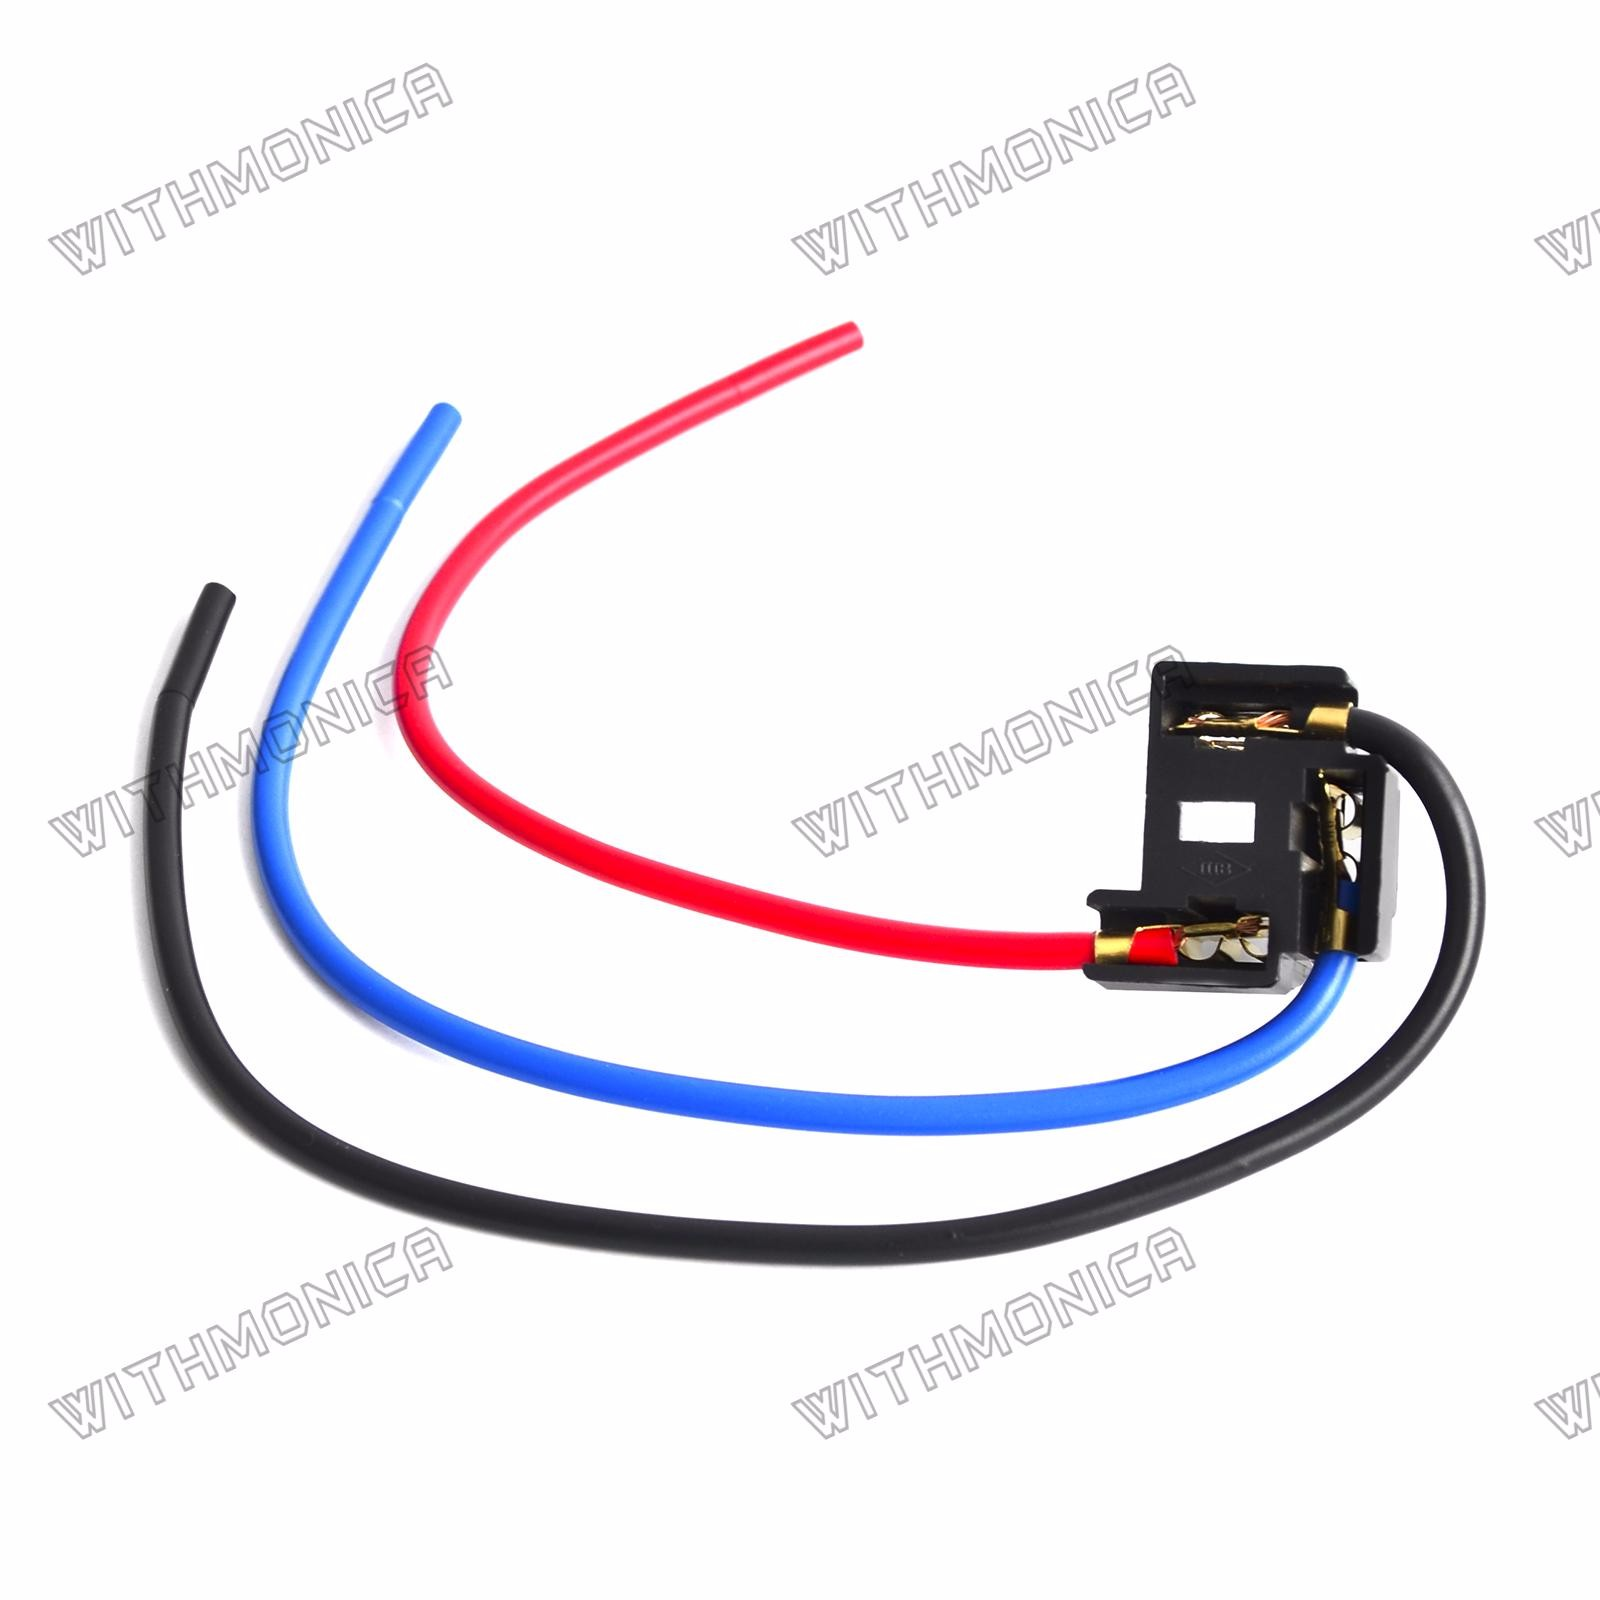 H4 Headlight Connector Wiring Diagram. Ford 8n 12 Volt ... on